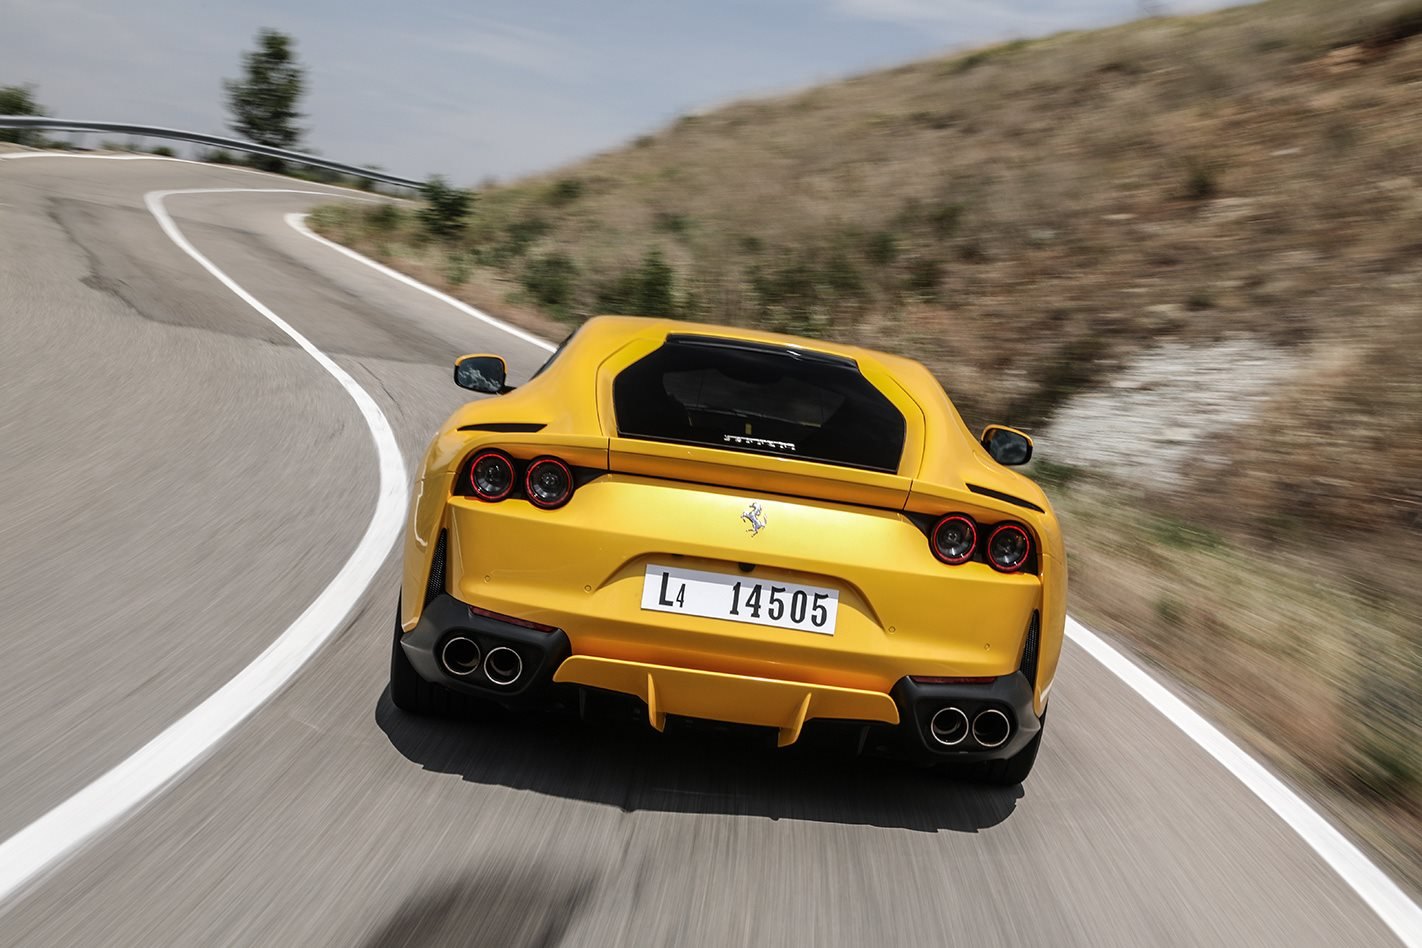 2018 Ferrari 812 Superfast rear.jpg